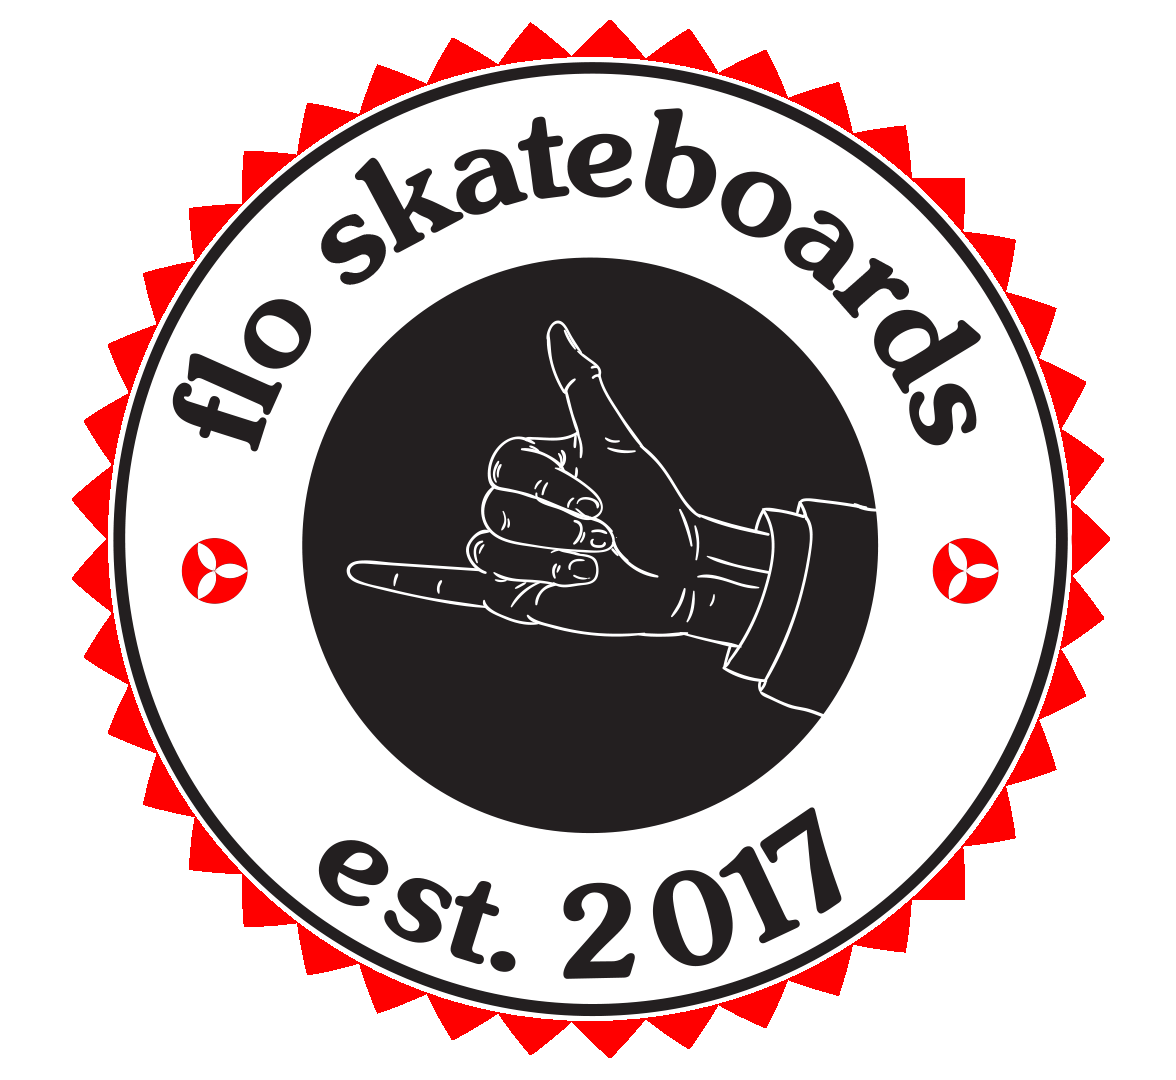 FLO SKATEBOARDS